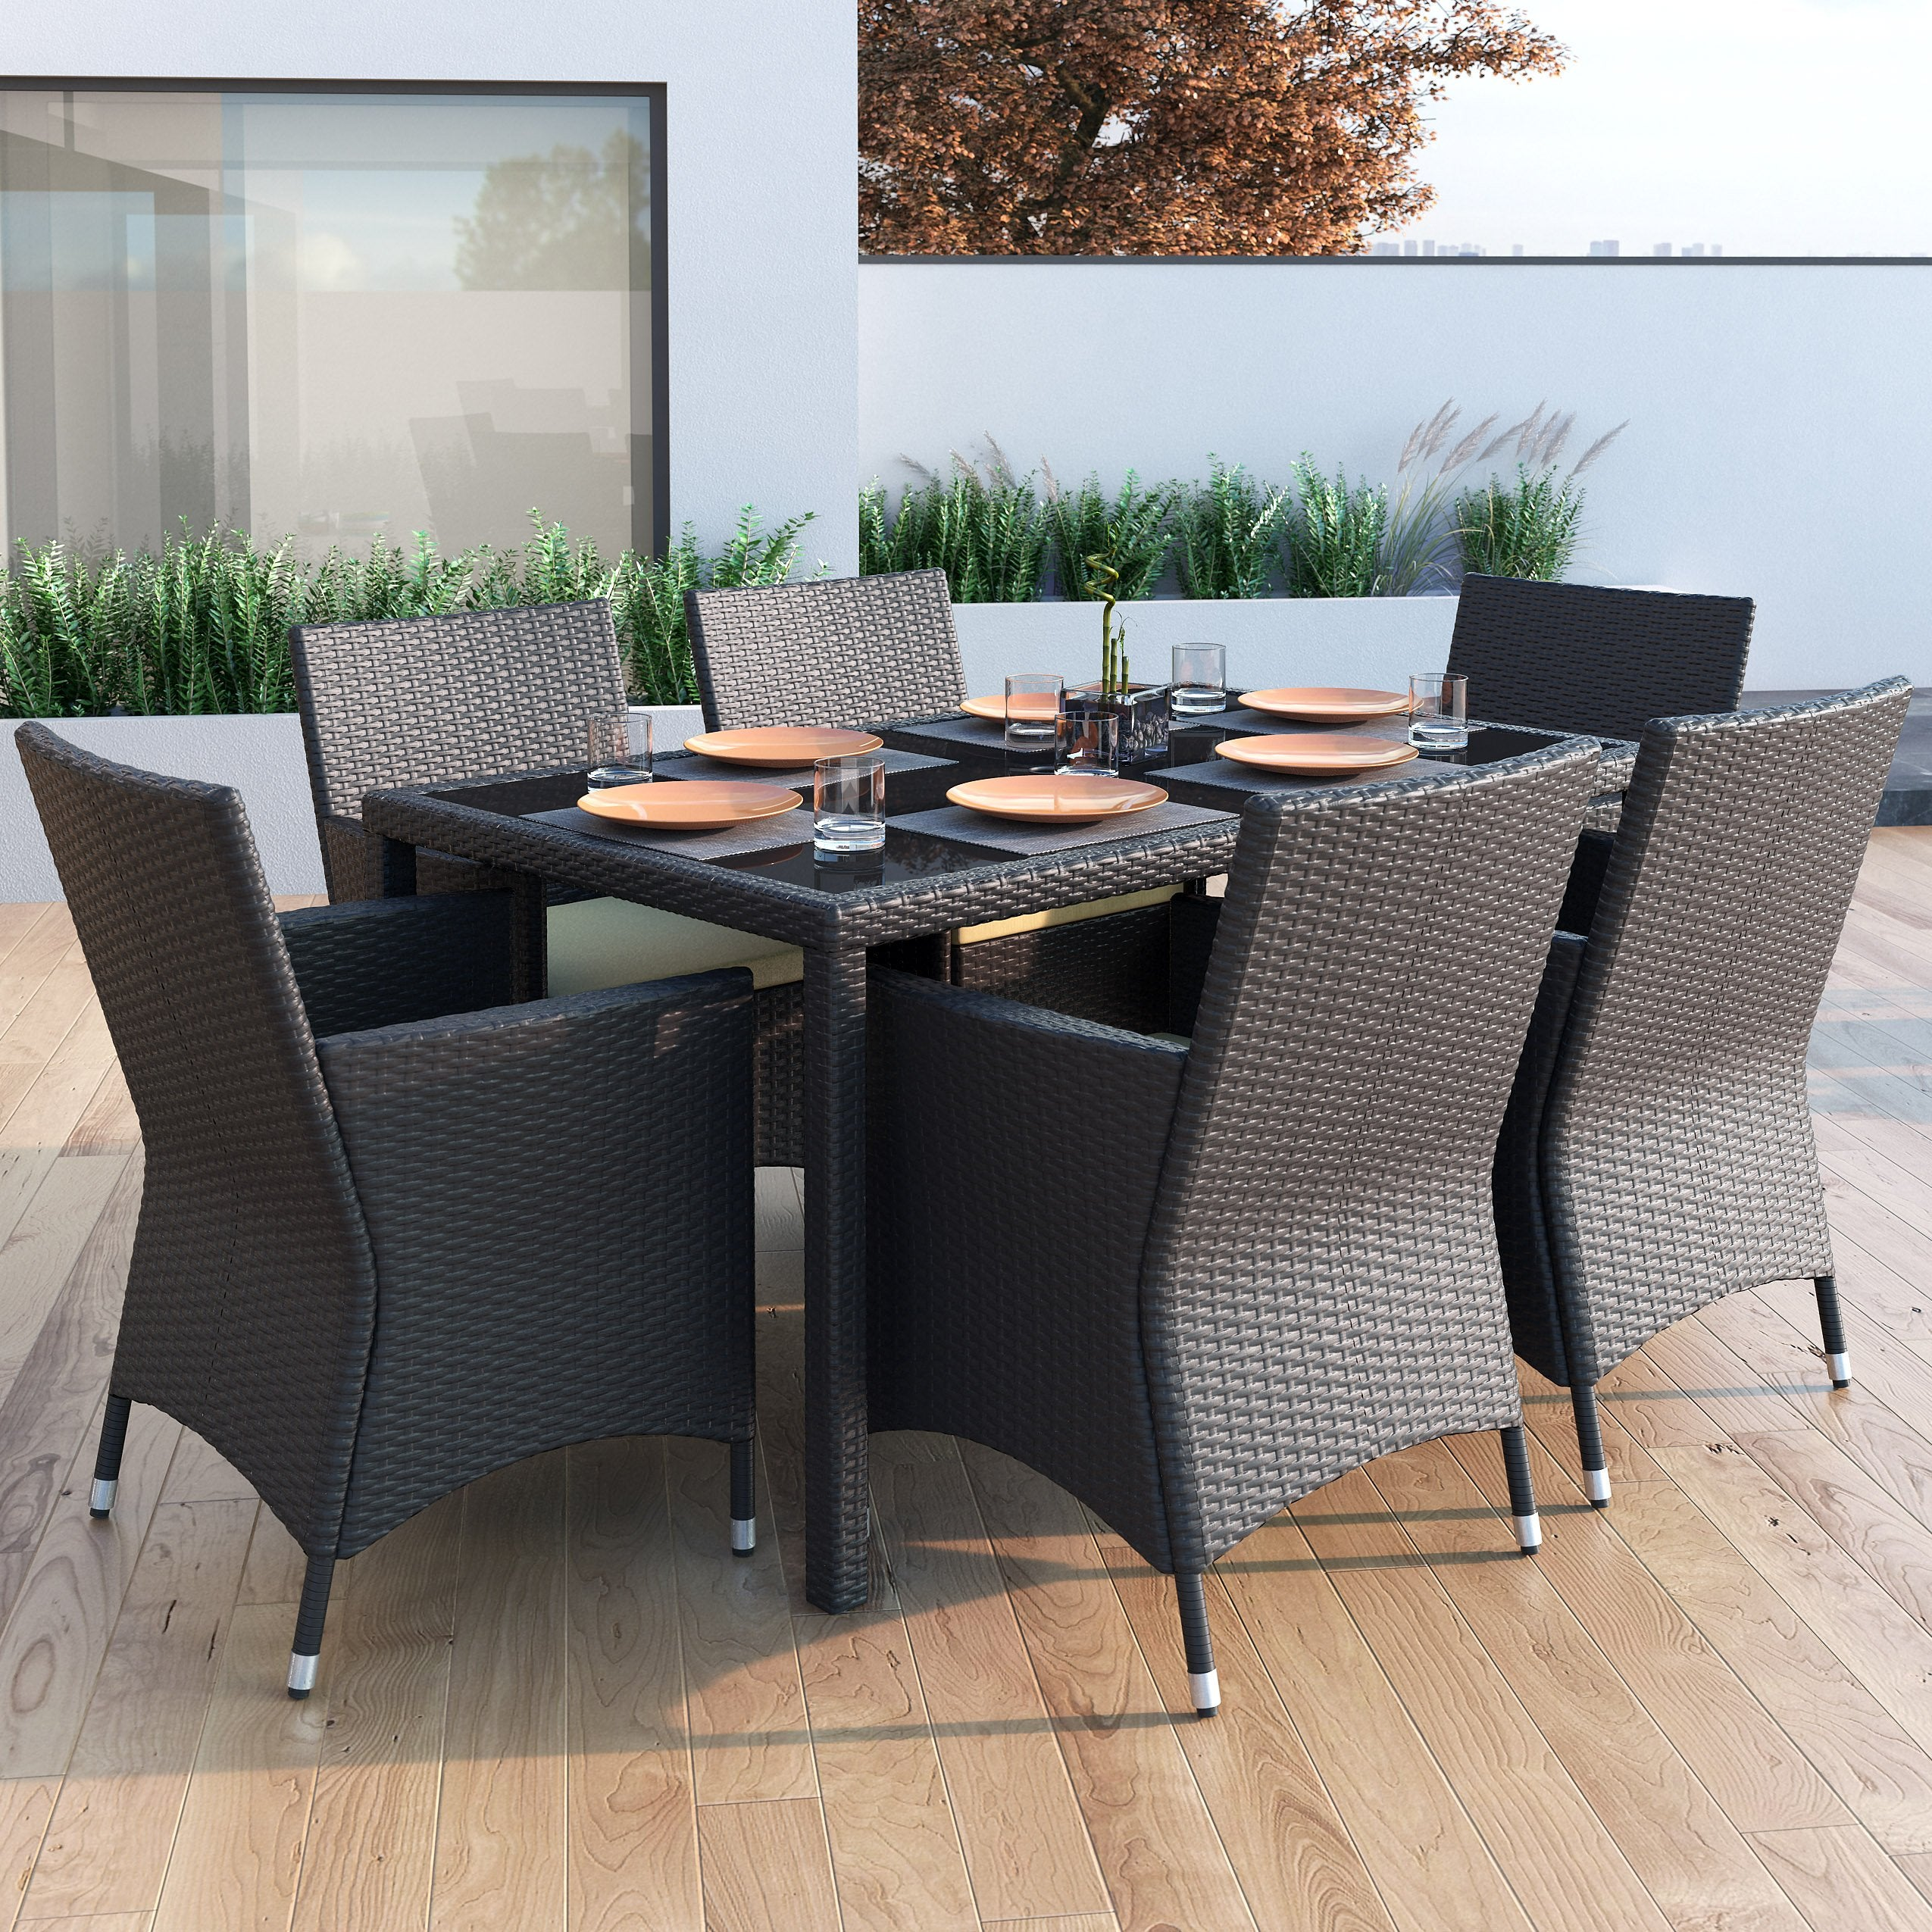 Dining Set Clearance: 7 Piece Charcoal Black Weave Patio Dining Set